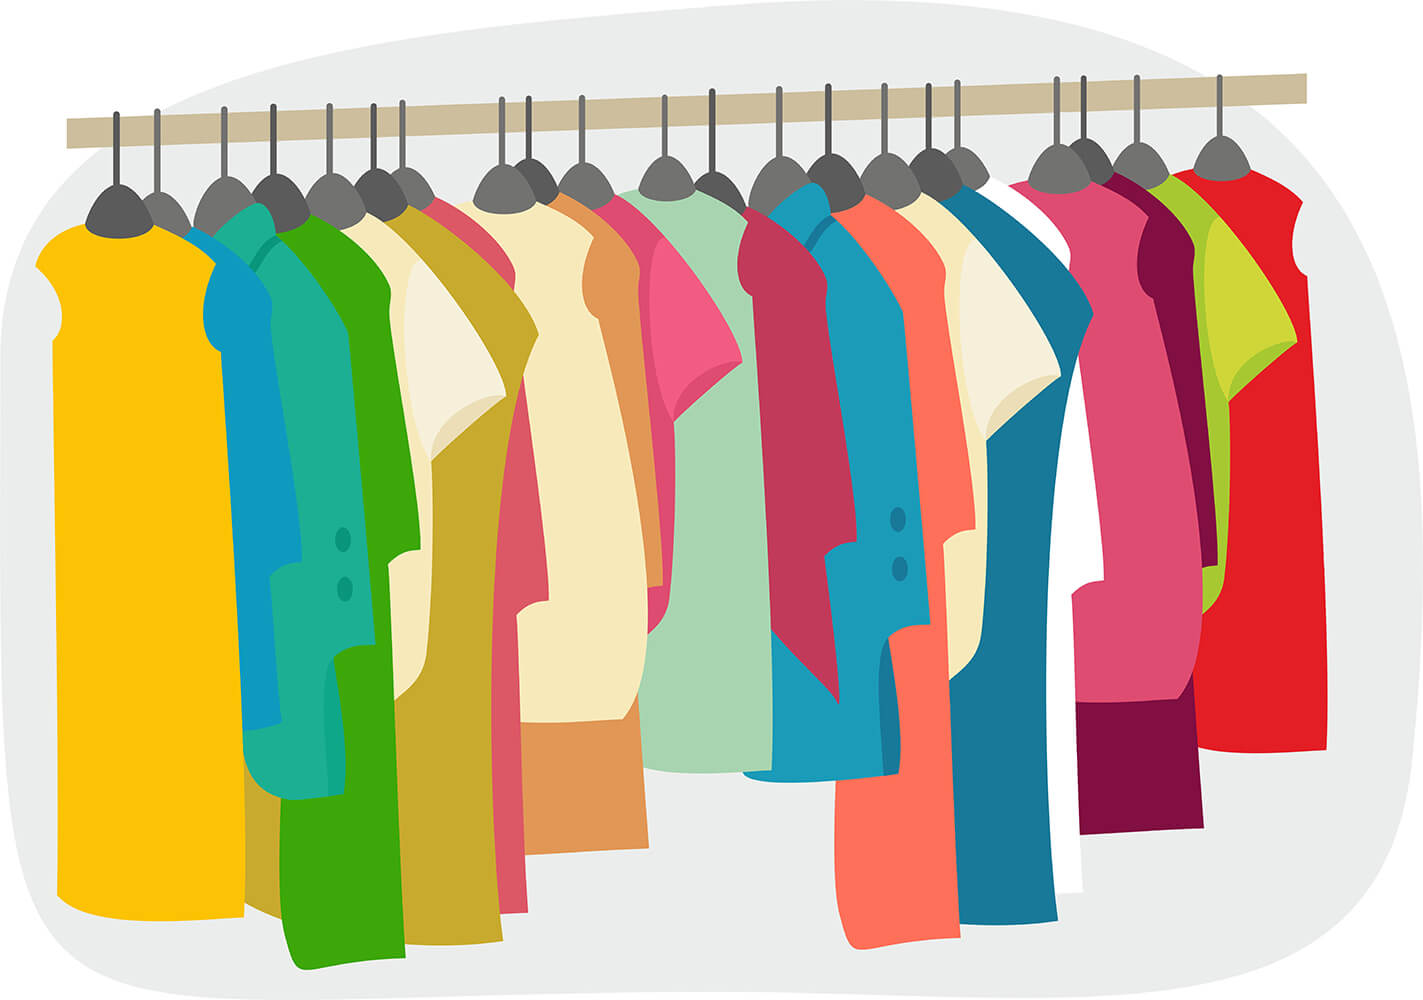 Background clipart clothes #7